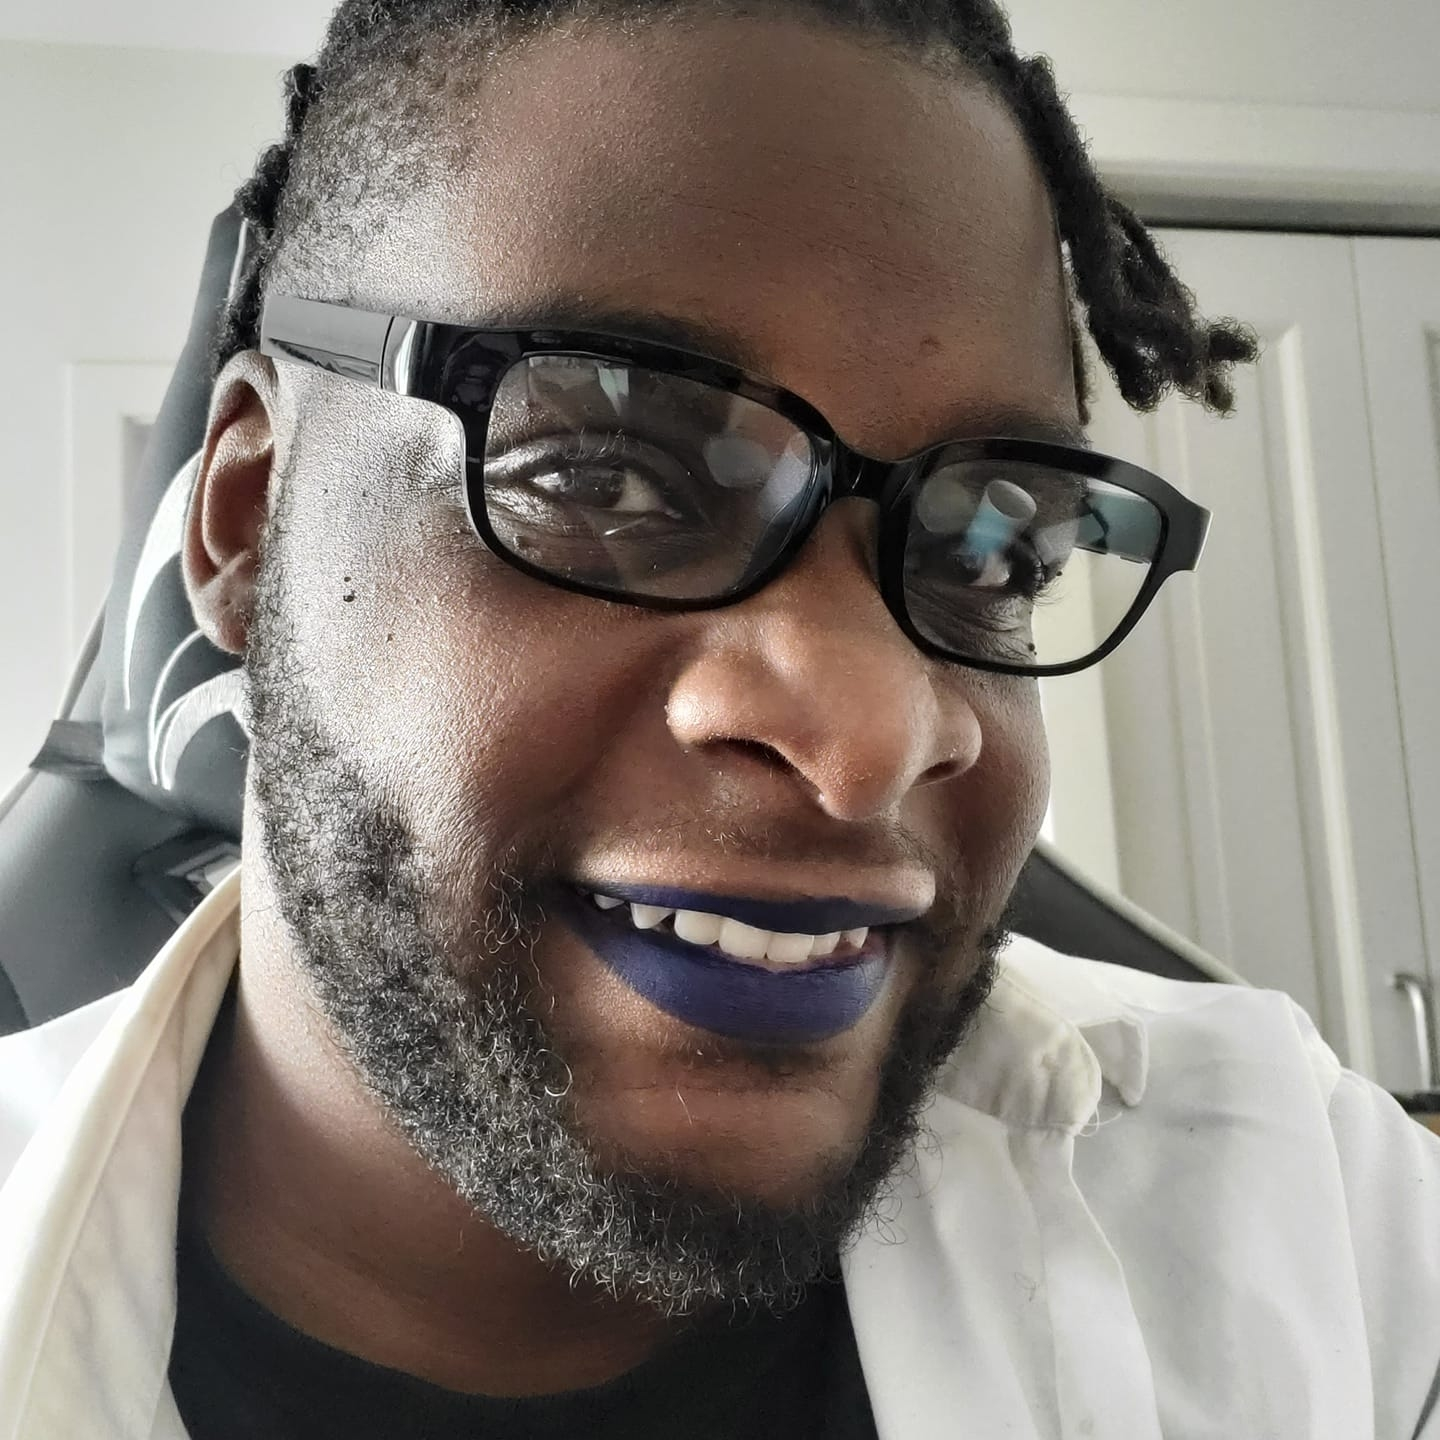 A picture of a black man with a shaved head and dreadlocks wearing glasses, and dark blue lipstick